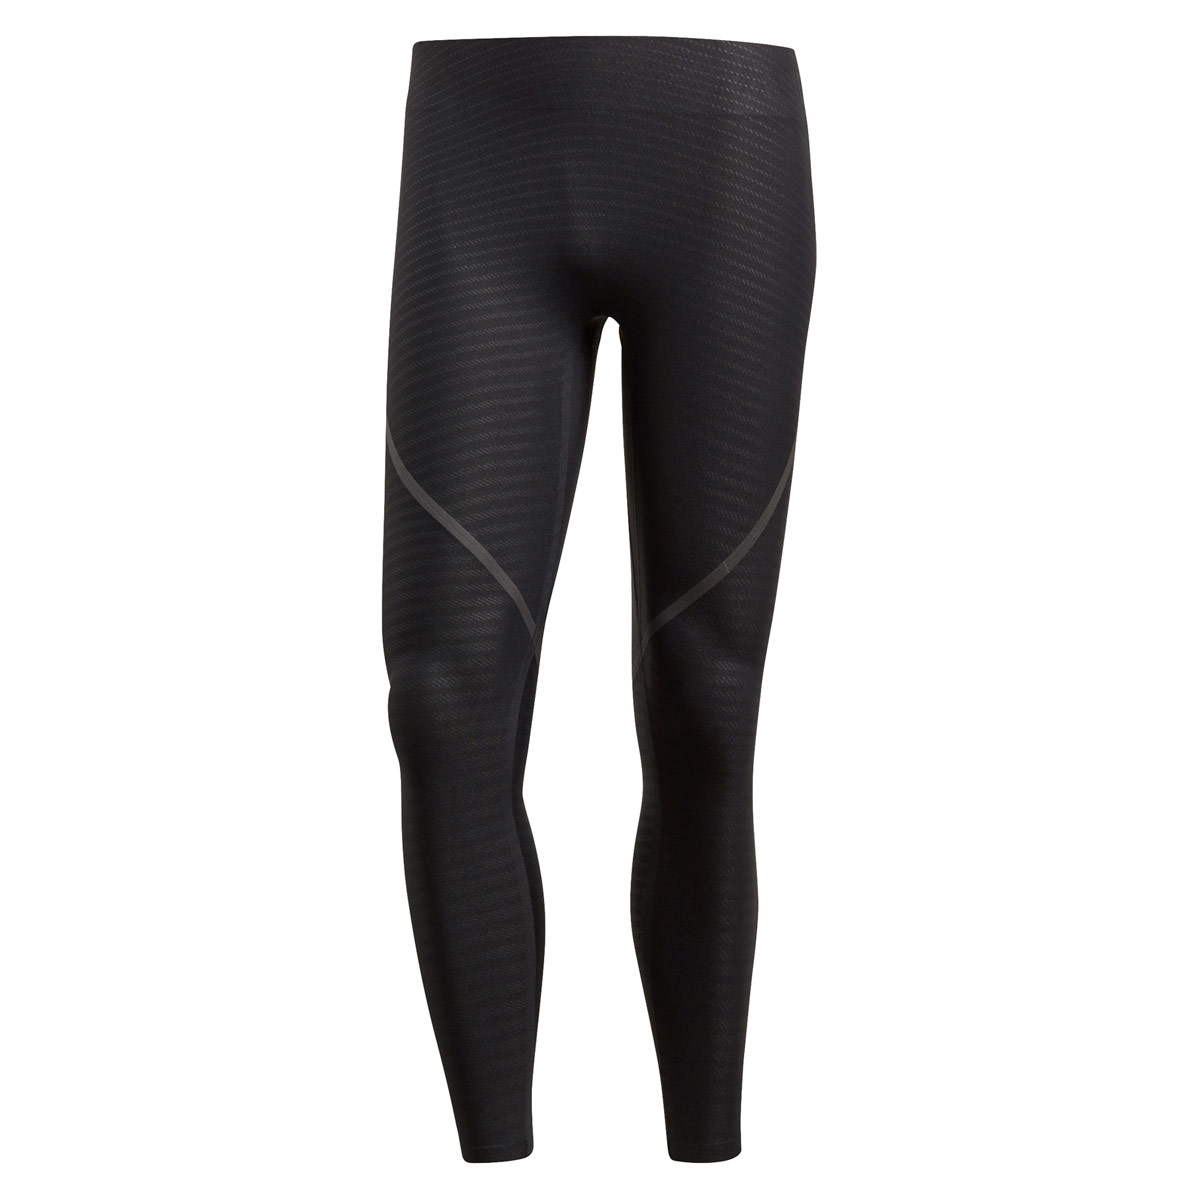 6f5fb165624a3 adidas Alphaskin 360 Lange Tight - Fitness trousers for Men - Black | 21RUN